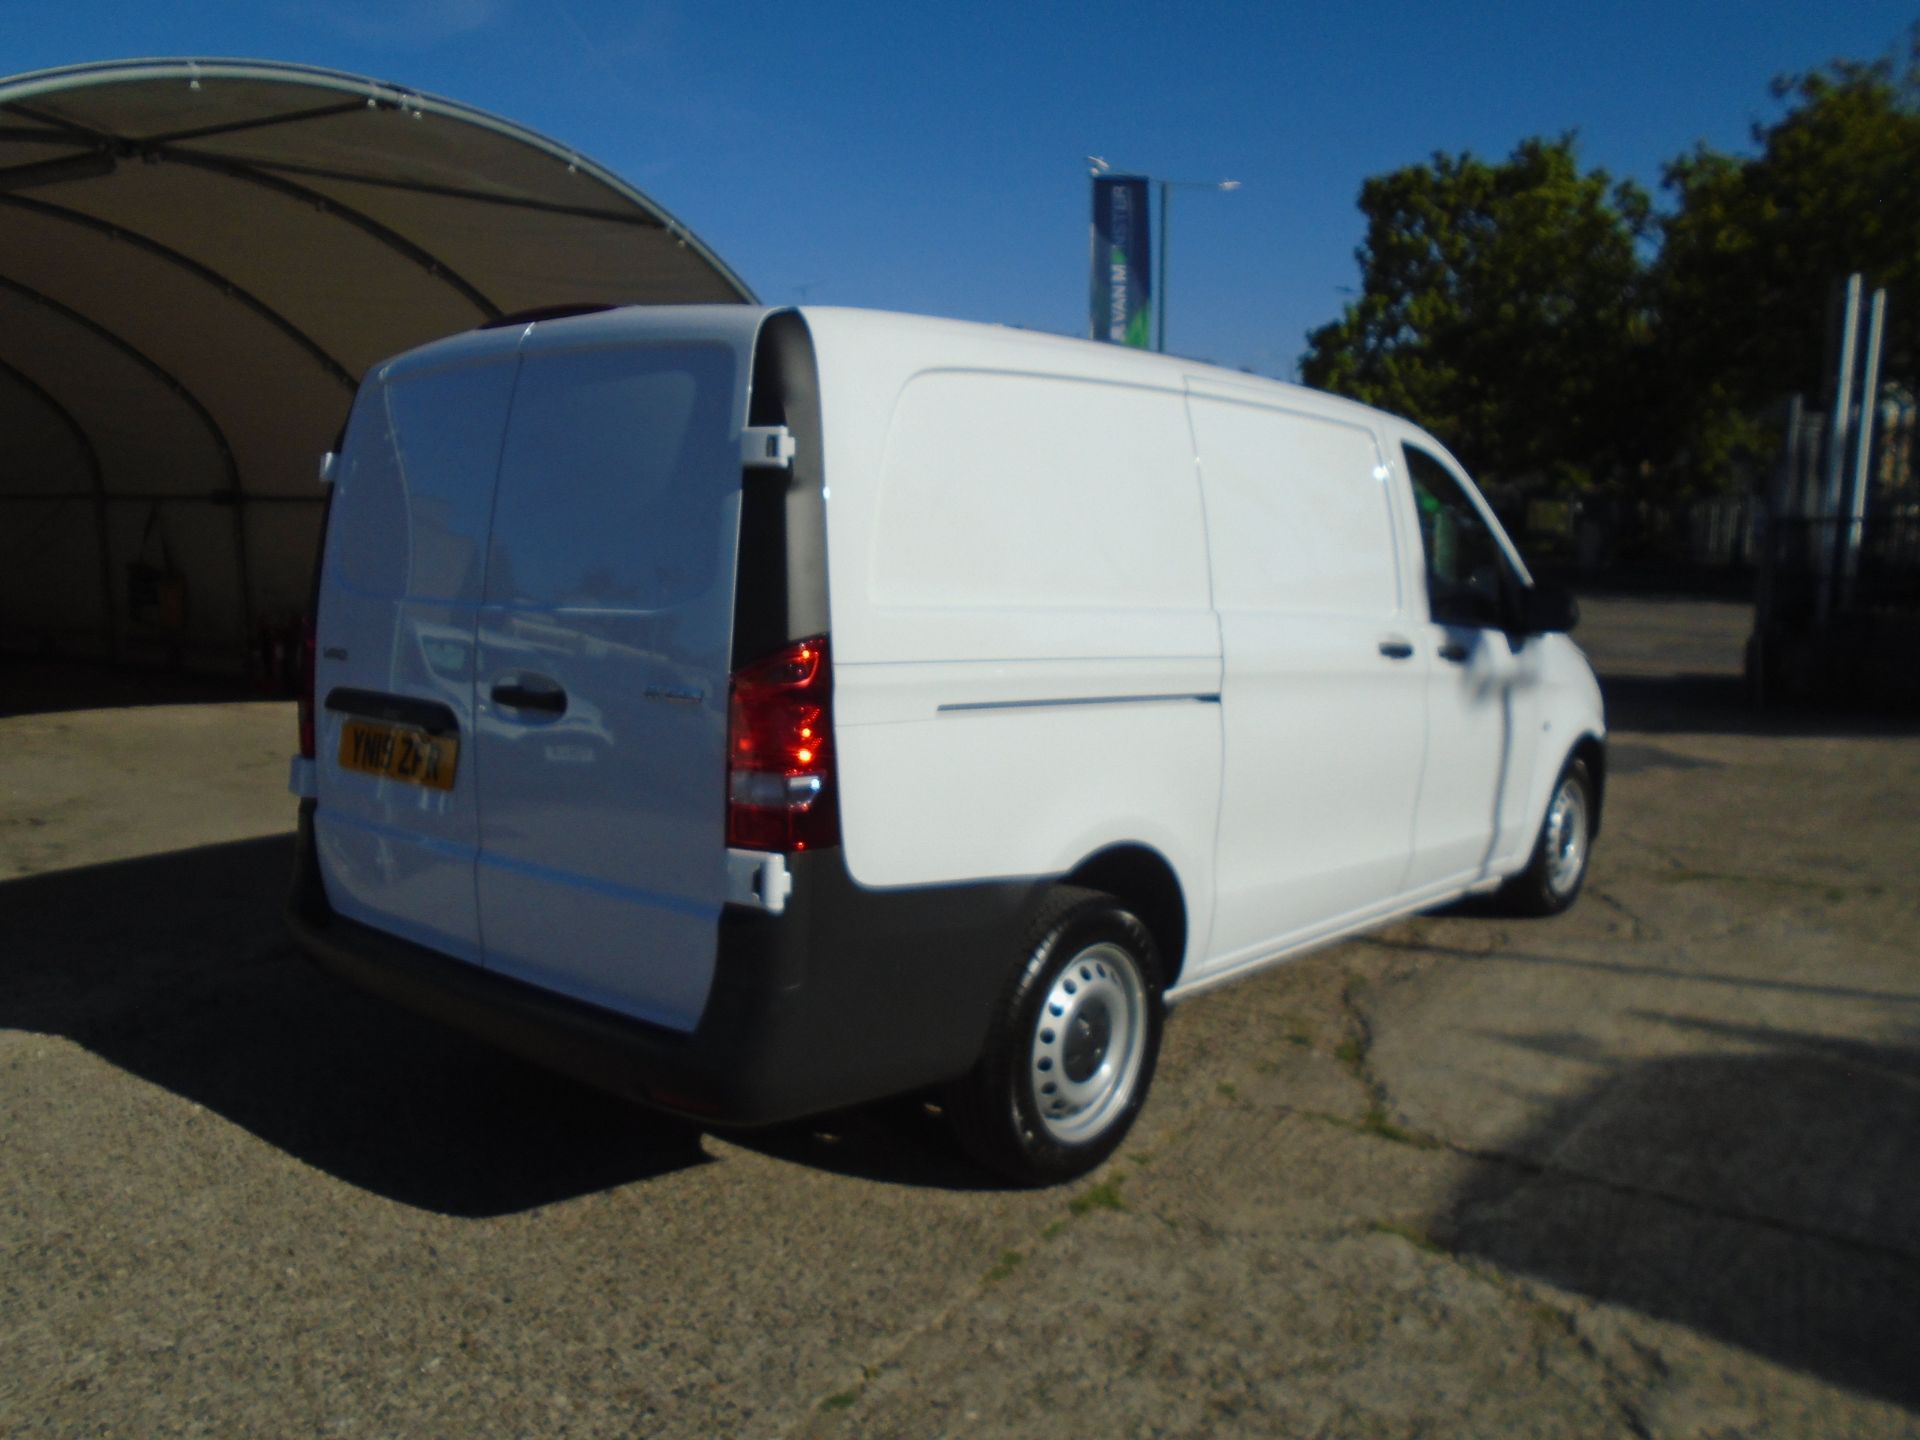 2019 Mercedes-Benz Vito  111Cdi Van Euro 6 Massive specification A/C Air Con, Delivery Miles Only (YN19ZFR) Image 6